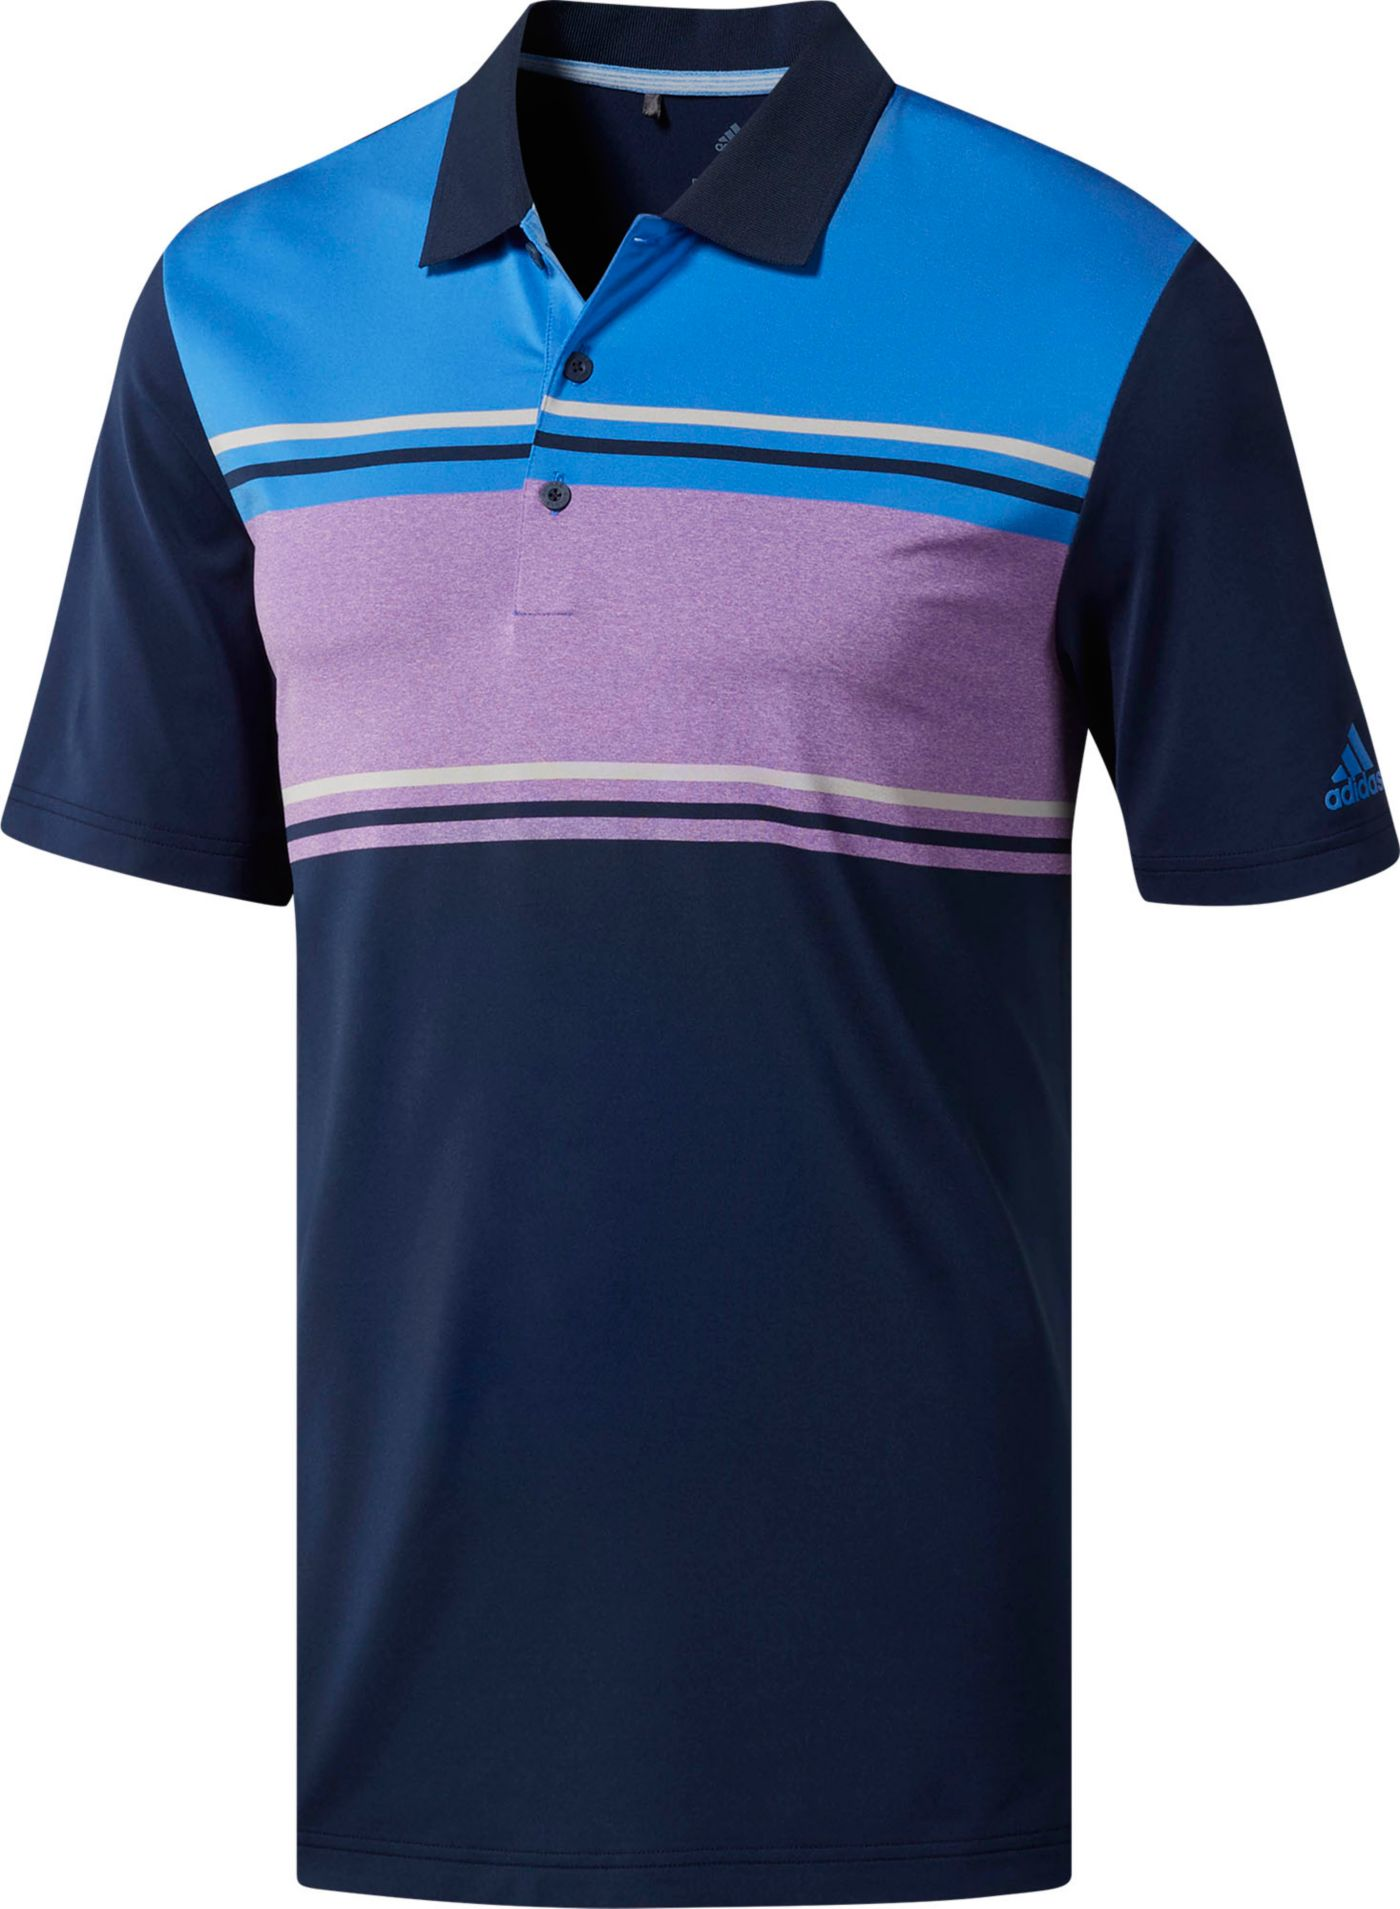 adidas Men's Ultimate365 Classic Merch Golf Polo